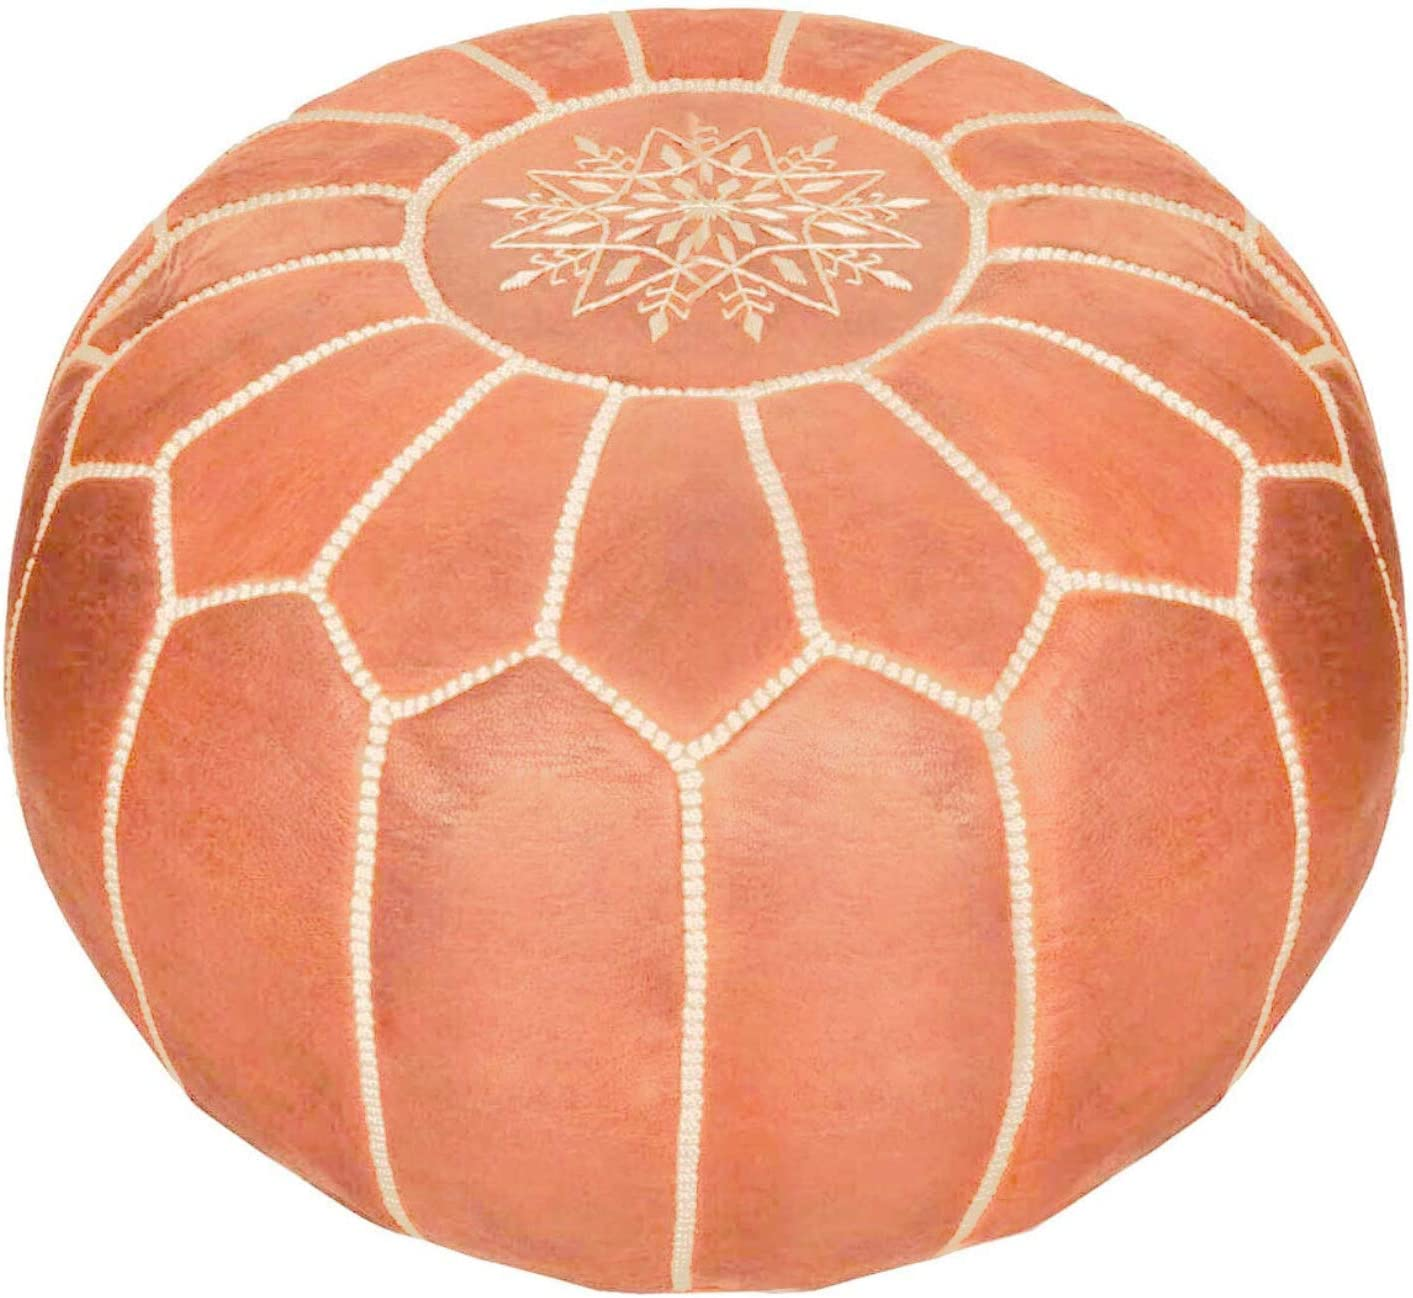 Moroccan Leather Pouf - Handmade Leather Pouffe - Luxury Tan Pouf - Ottoman Footstool Hassock - 100% Real Natural Goat Leather - Unstuffed